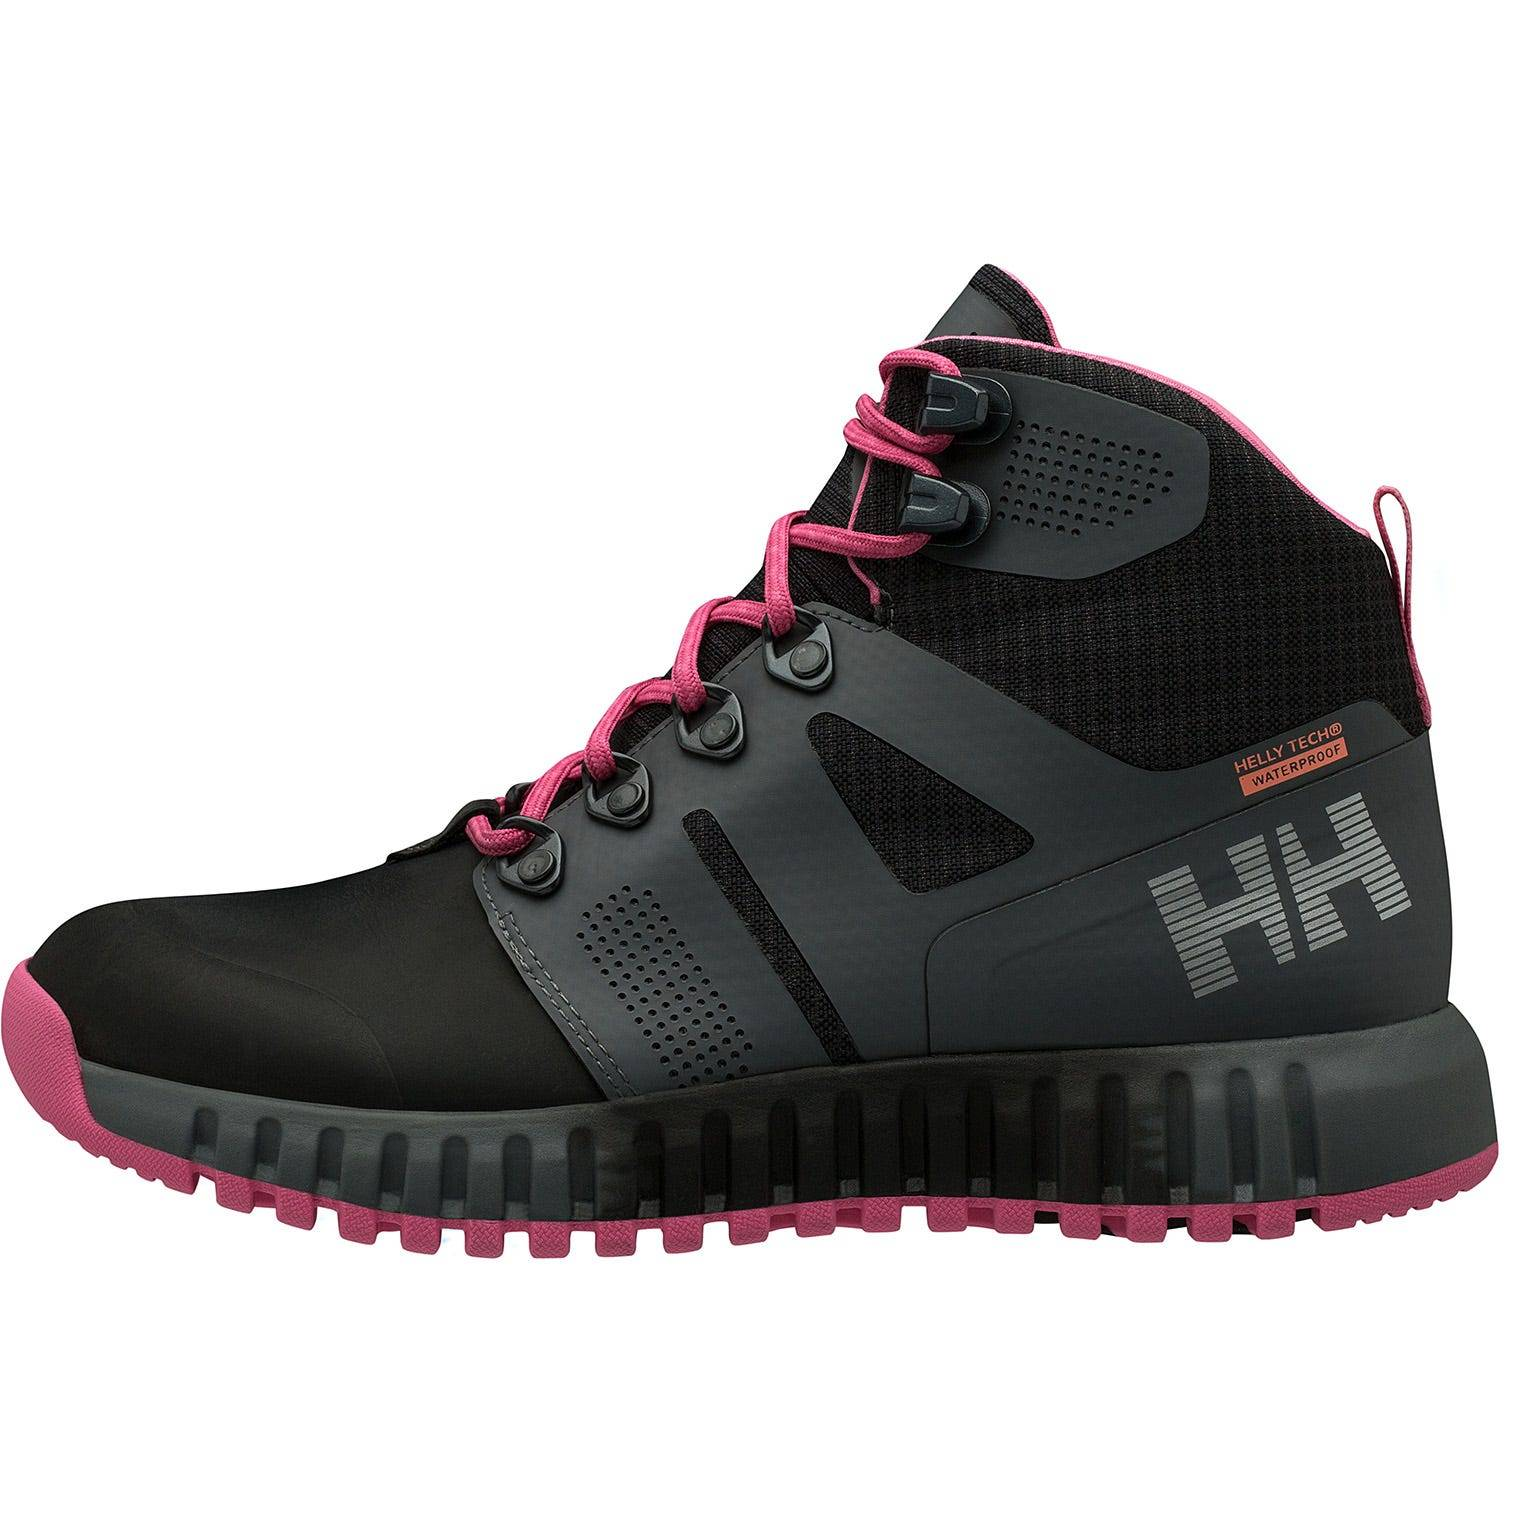 Helly Hansen W Vanir Gallivant Ht Womens Hiking Boot Black 39.3/8